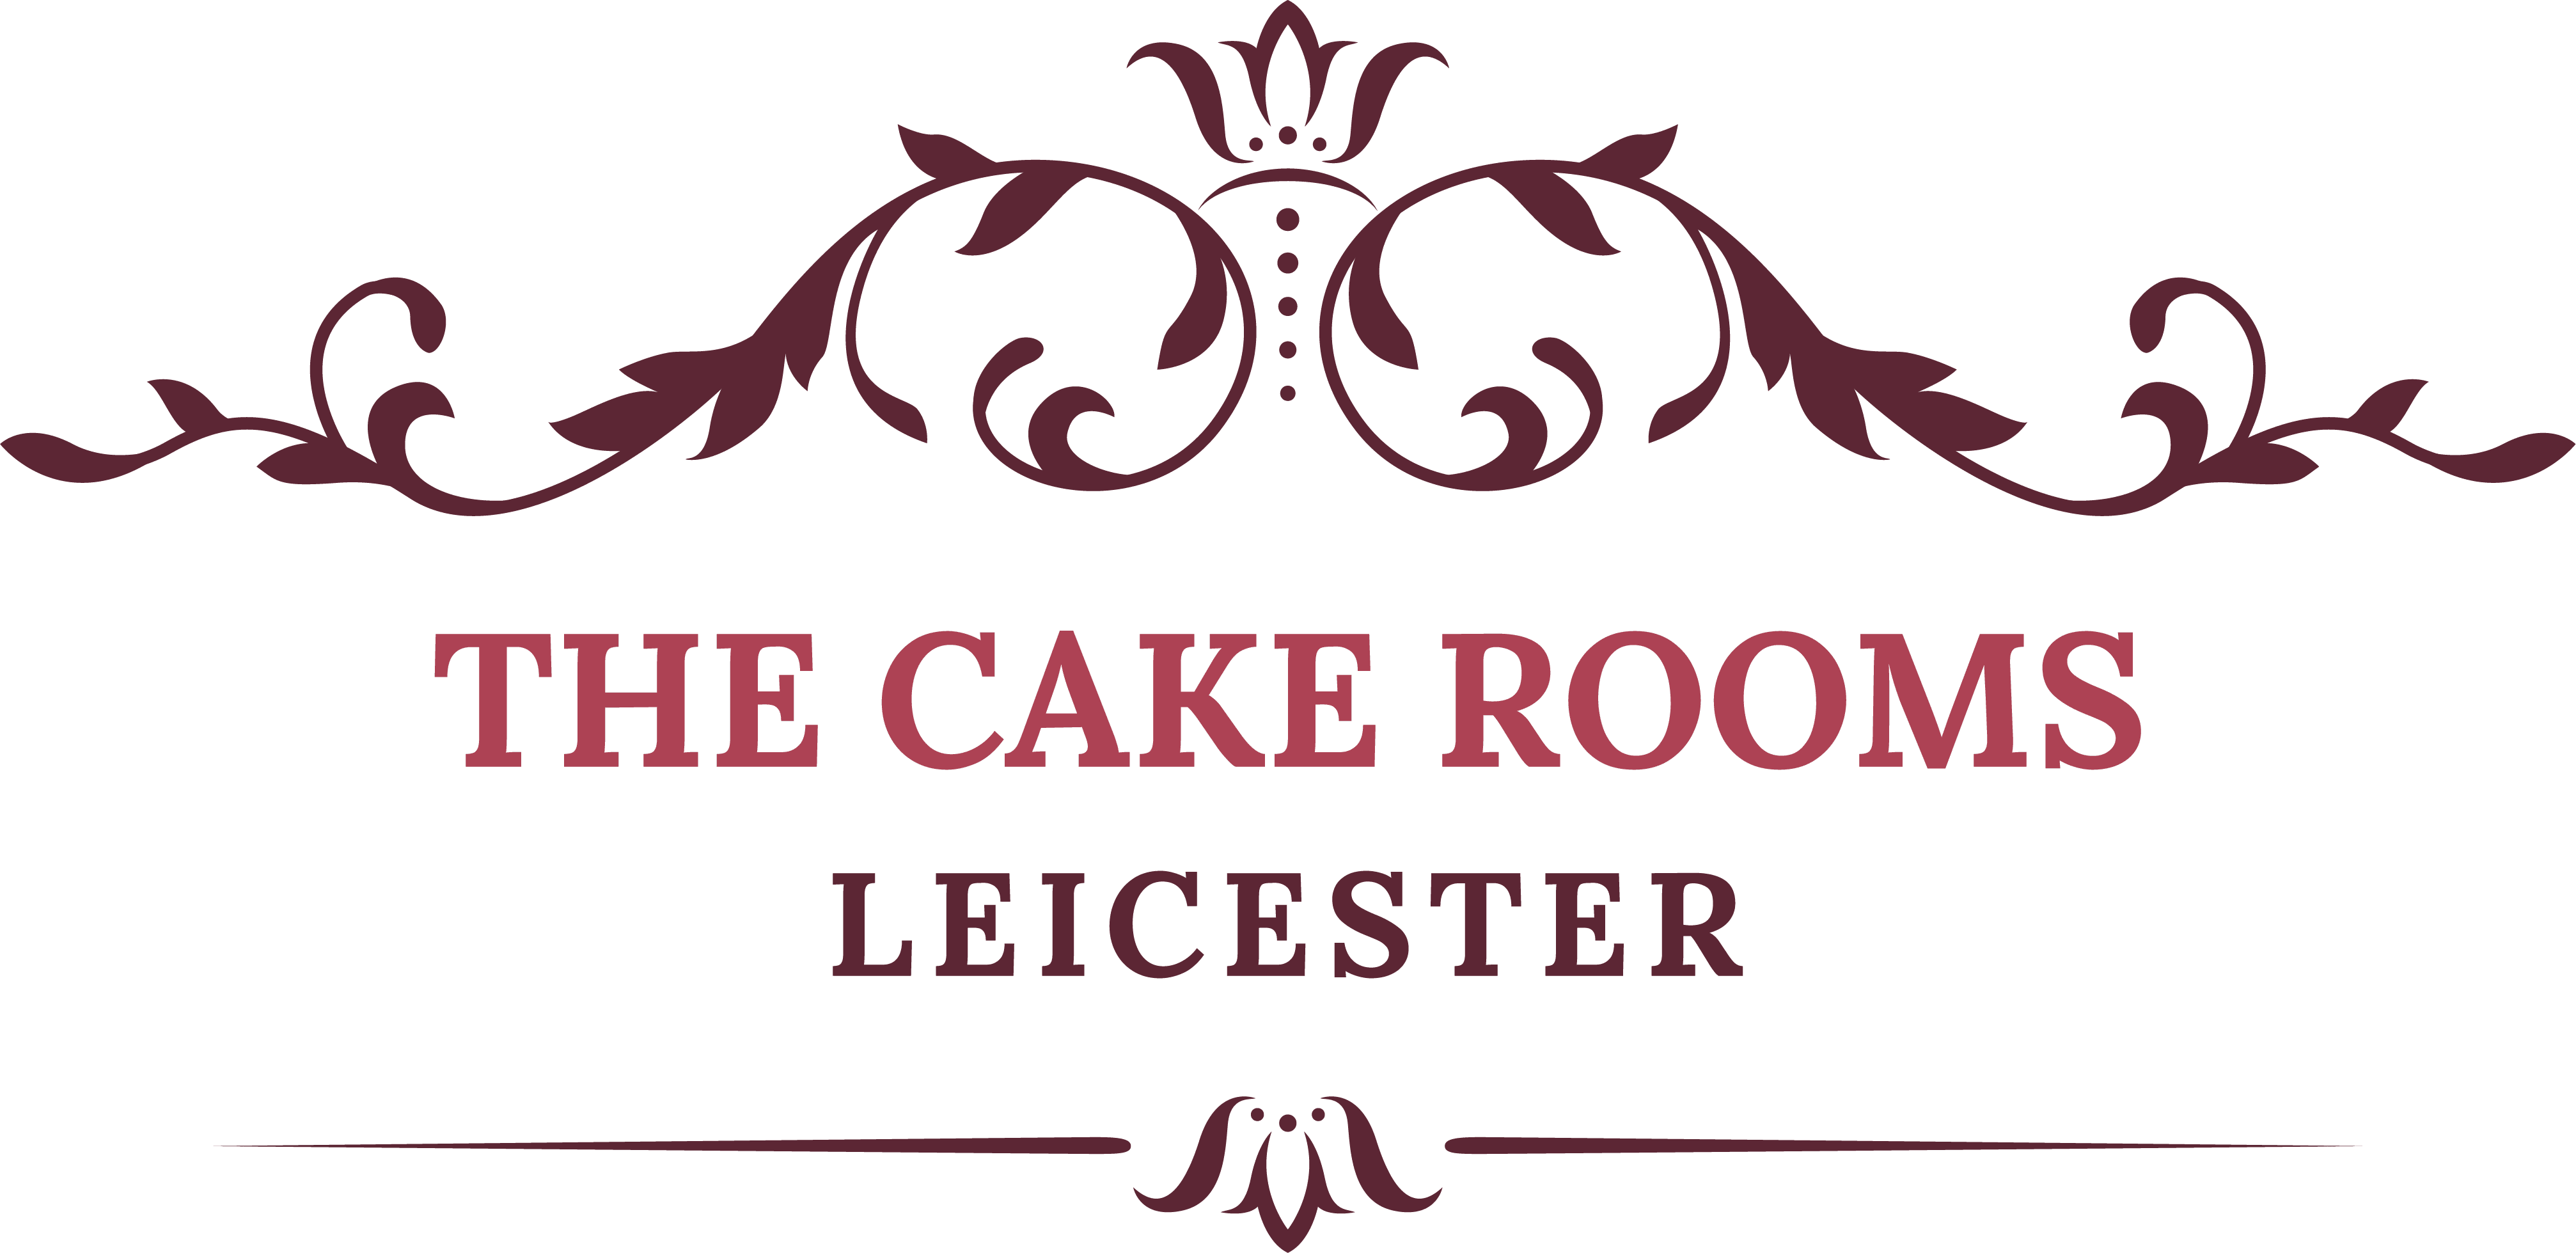 Price Calculator | Price of Cakes - The Cake Rooms Leicester